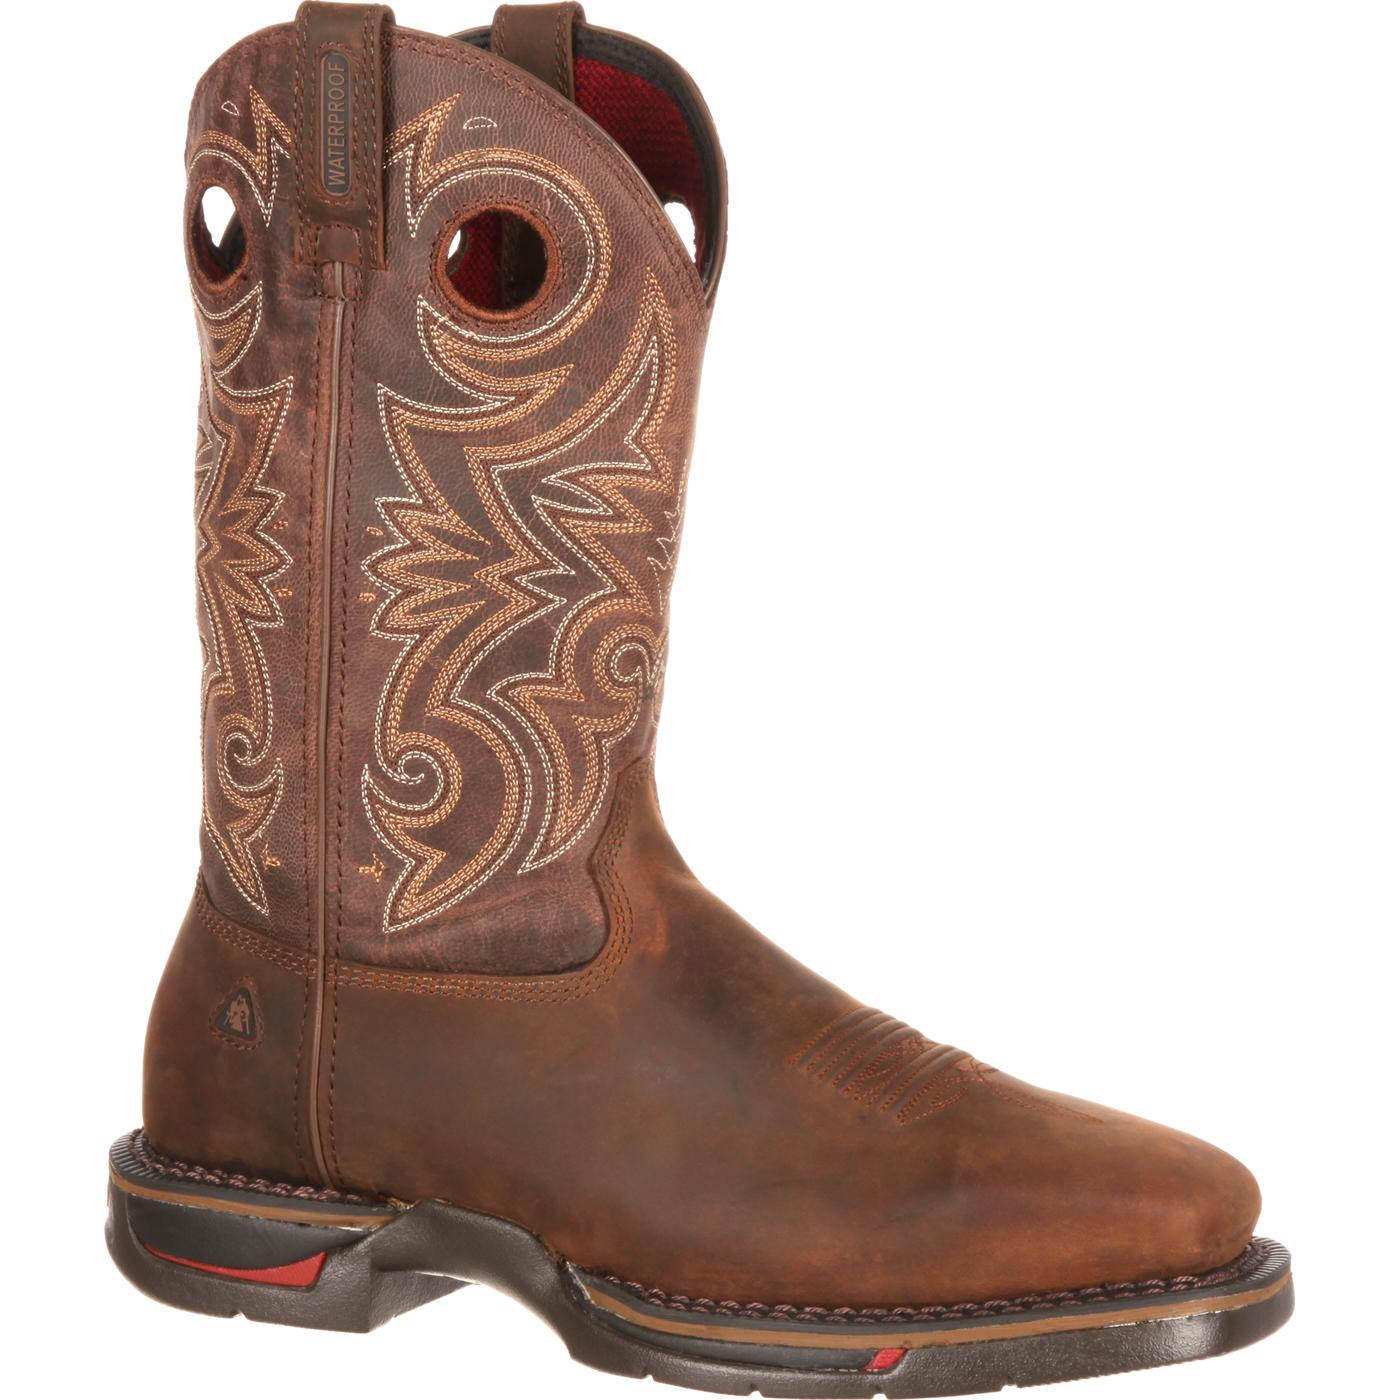 Headquartered in Nelsonville, Ohio, ROCKY ® Outdoor Gear is a world leader in rugged outdoor and occupational footwear. A corporate office, warehouse, and distribution center now accompany the original manufacturing building in Nelsonville that goes back to